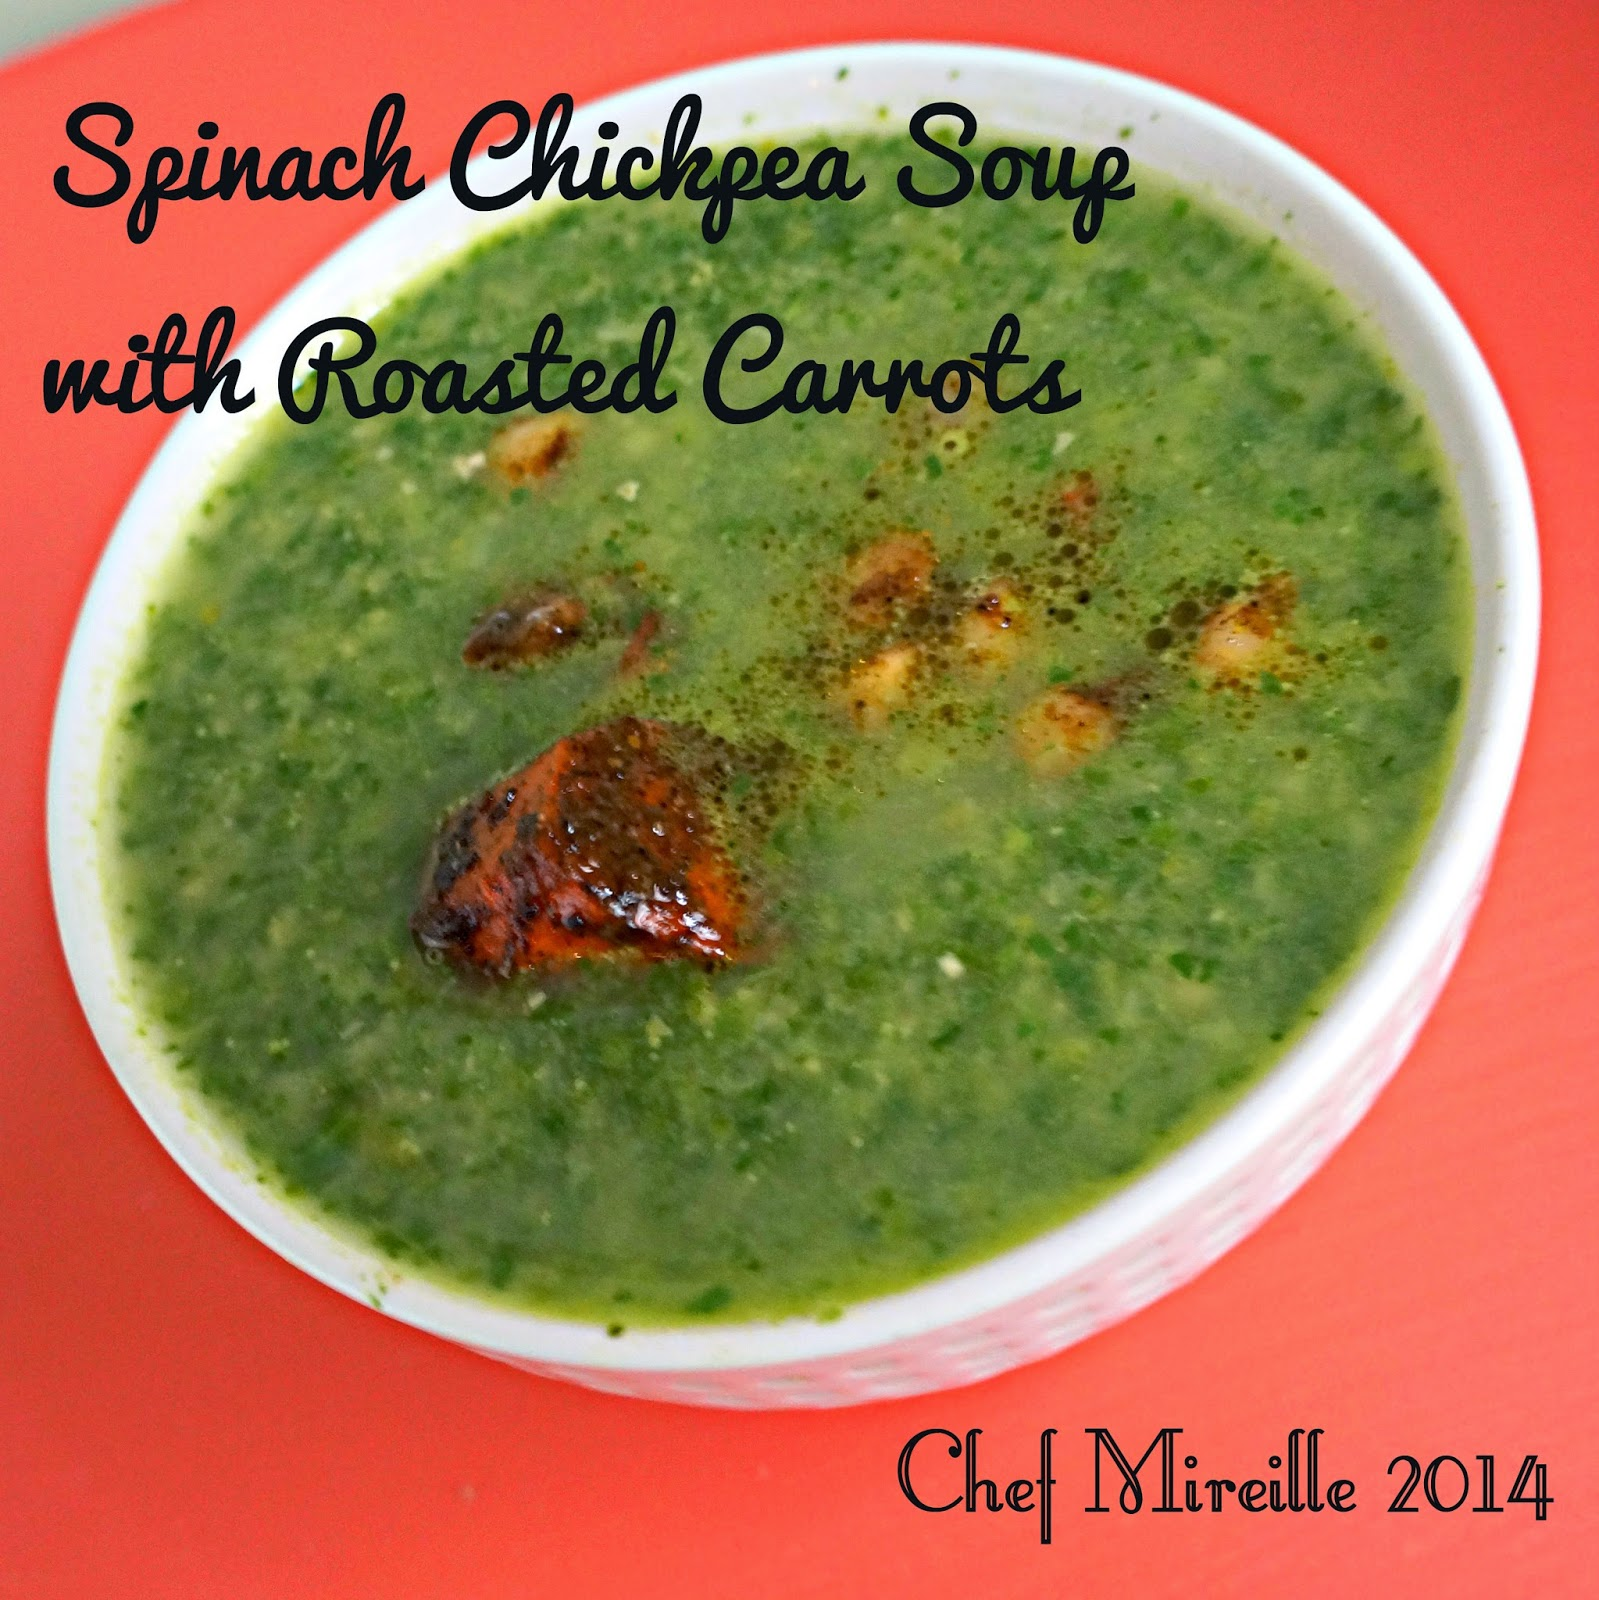 Spinach Soup with Roasted Carrots, Spinach Soup